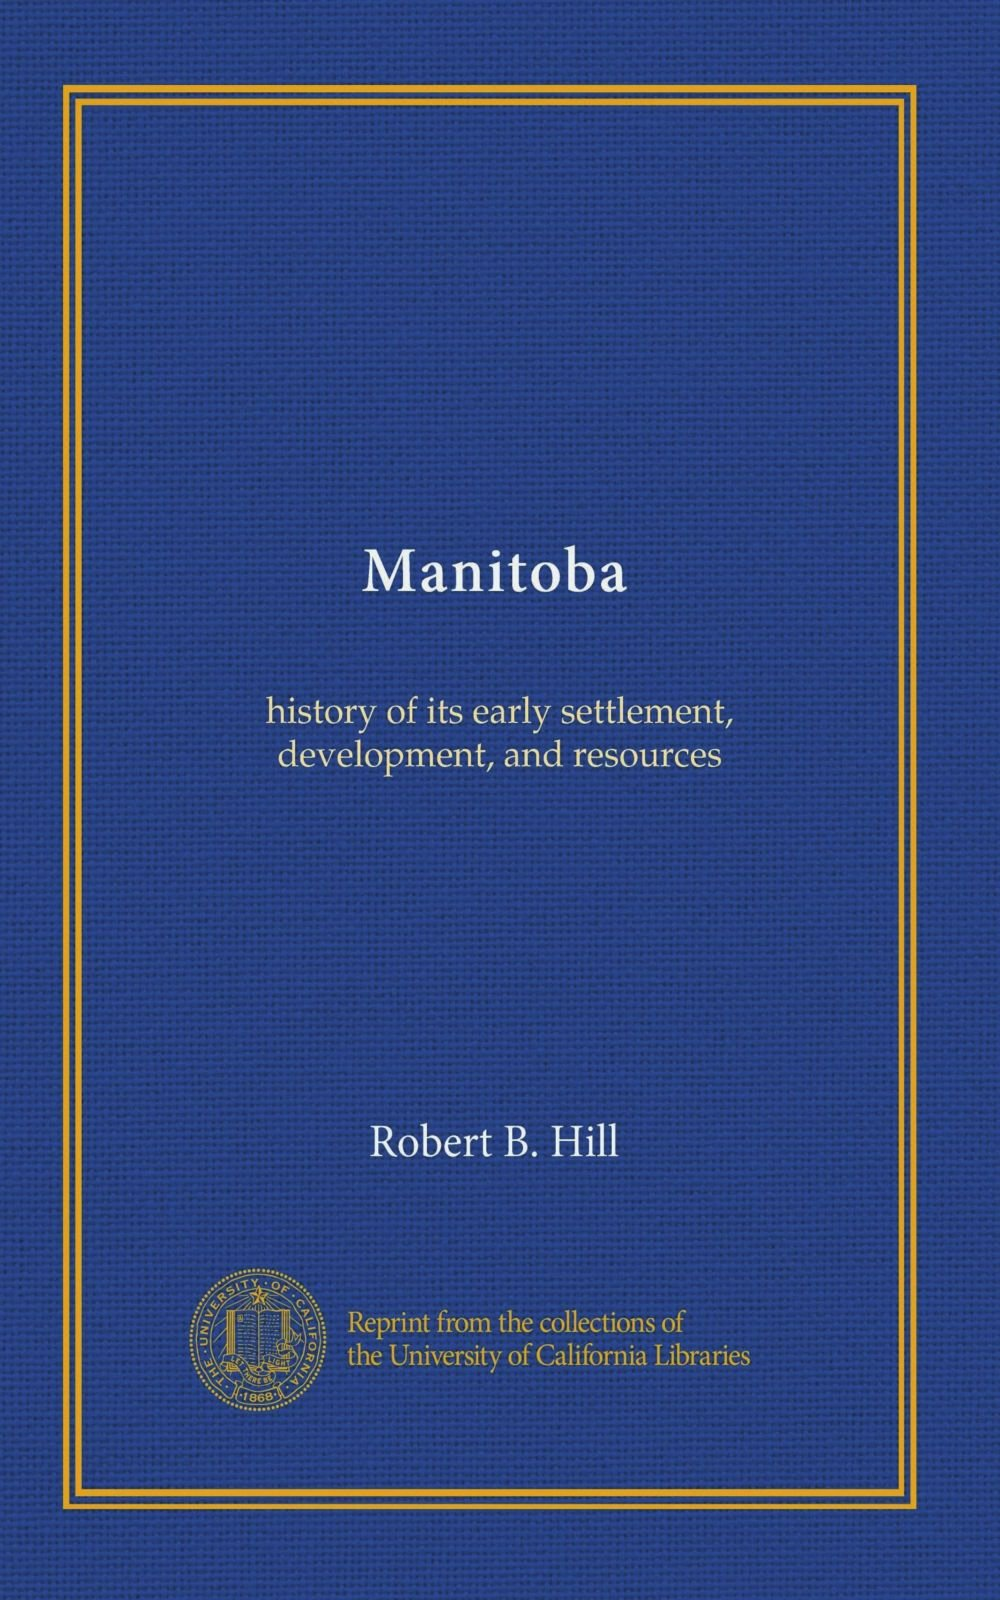 Download Manitoba: history of its early settlement, development, and resources pdf